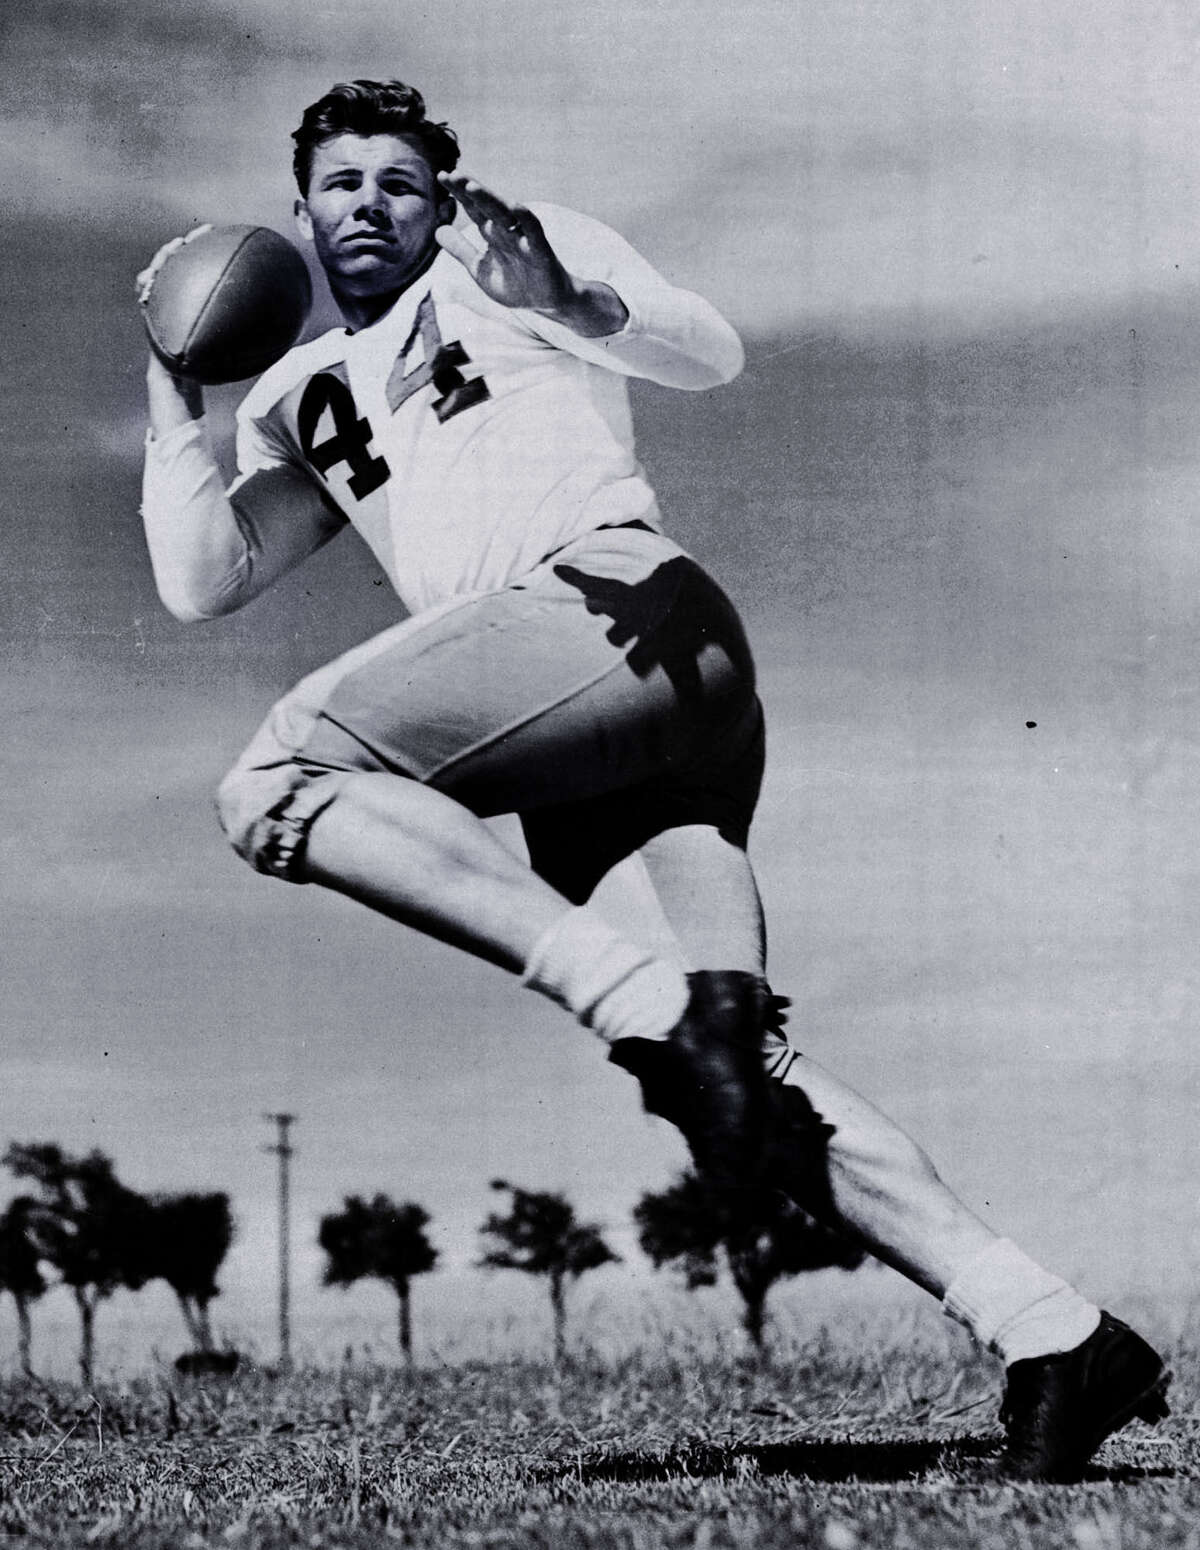 Kyle RoteHigh school: JeffersonPosition: HalfbackCollege: SMUA-A year: 1950HOF induction: 1964Rundown: After earning All-State honors at Jefferson in football and basketball, he was a star at baseball, football and track and finished runner-up for the 1950 Heisman Trophy and was the first overall pick in the 1951 NFL draft. He was selected to four Pro Bowls during an 11-season career with the New York Giants.